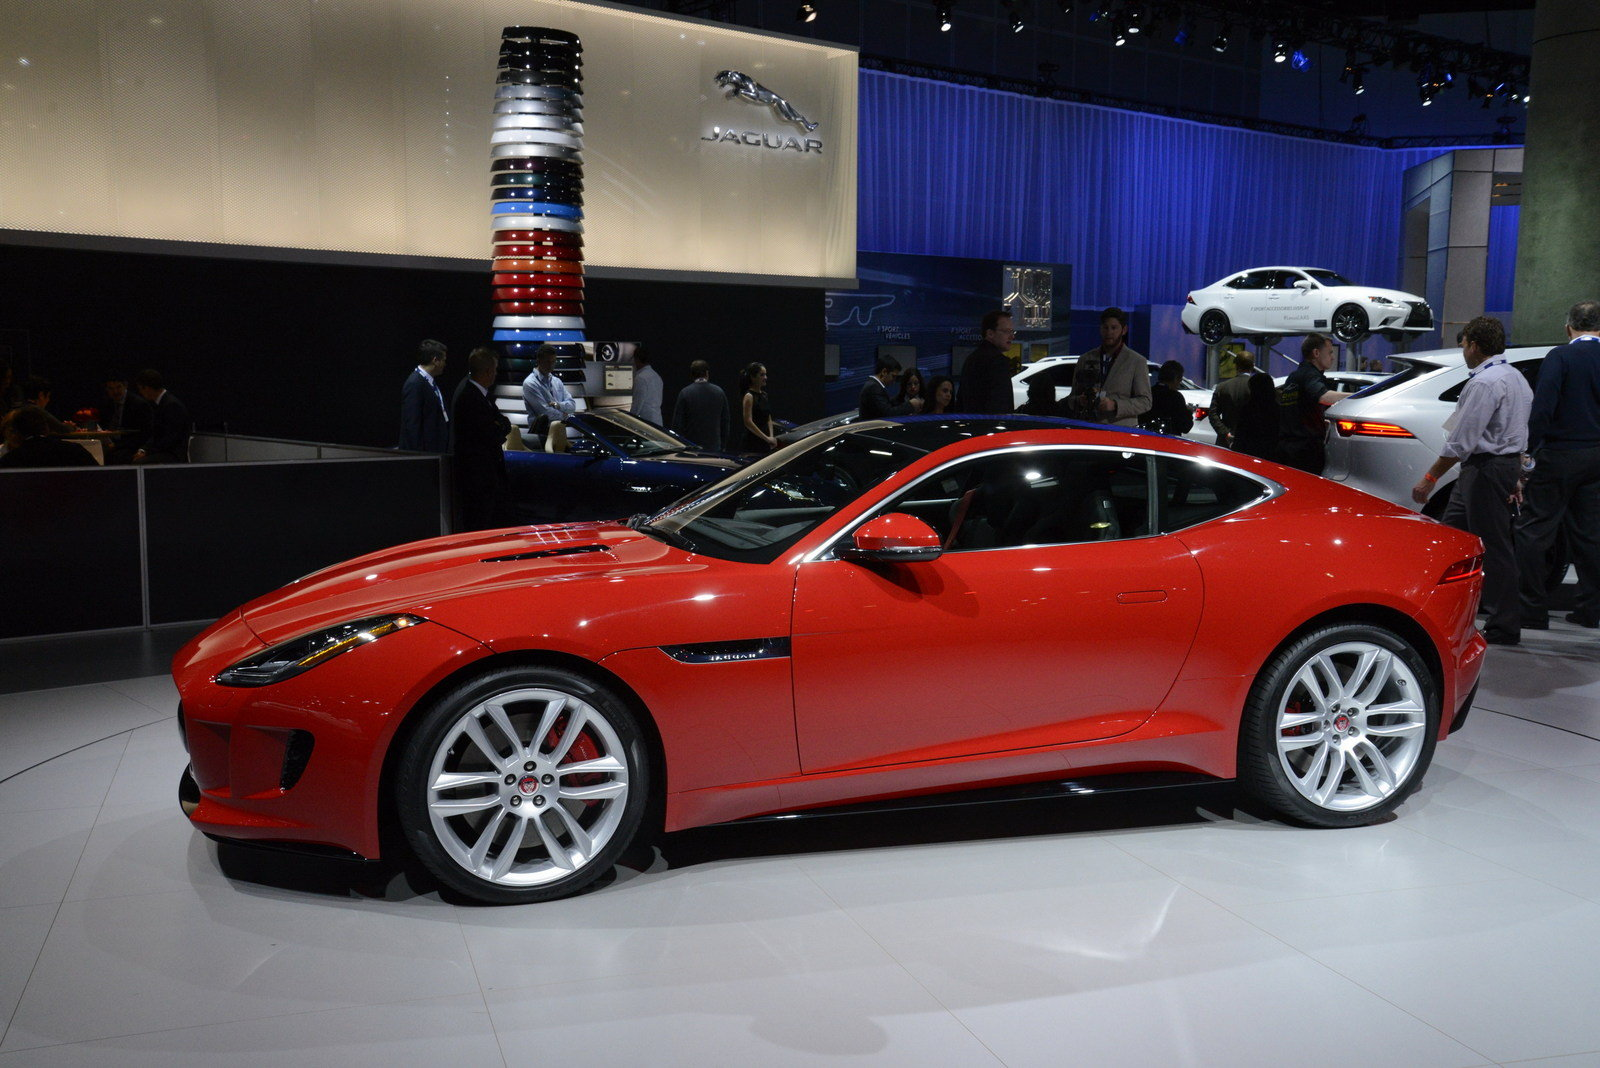 2014 jaguar f type coupe picture 533536 car review top speed. Black Bedroom Furniture Sets. Home Design Ideas